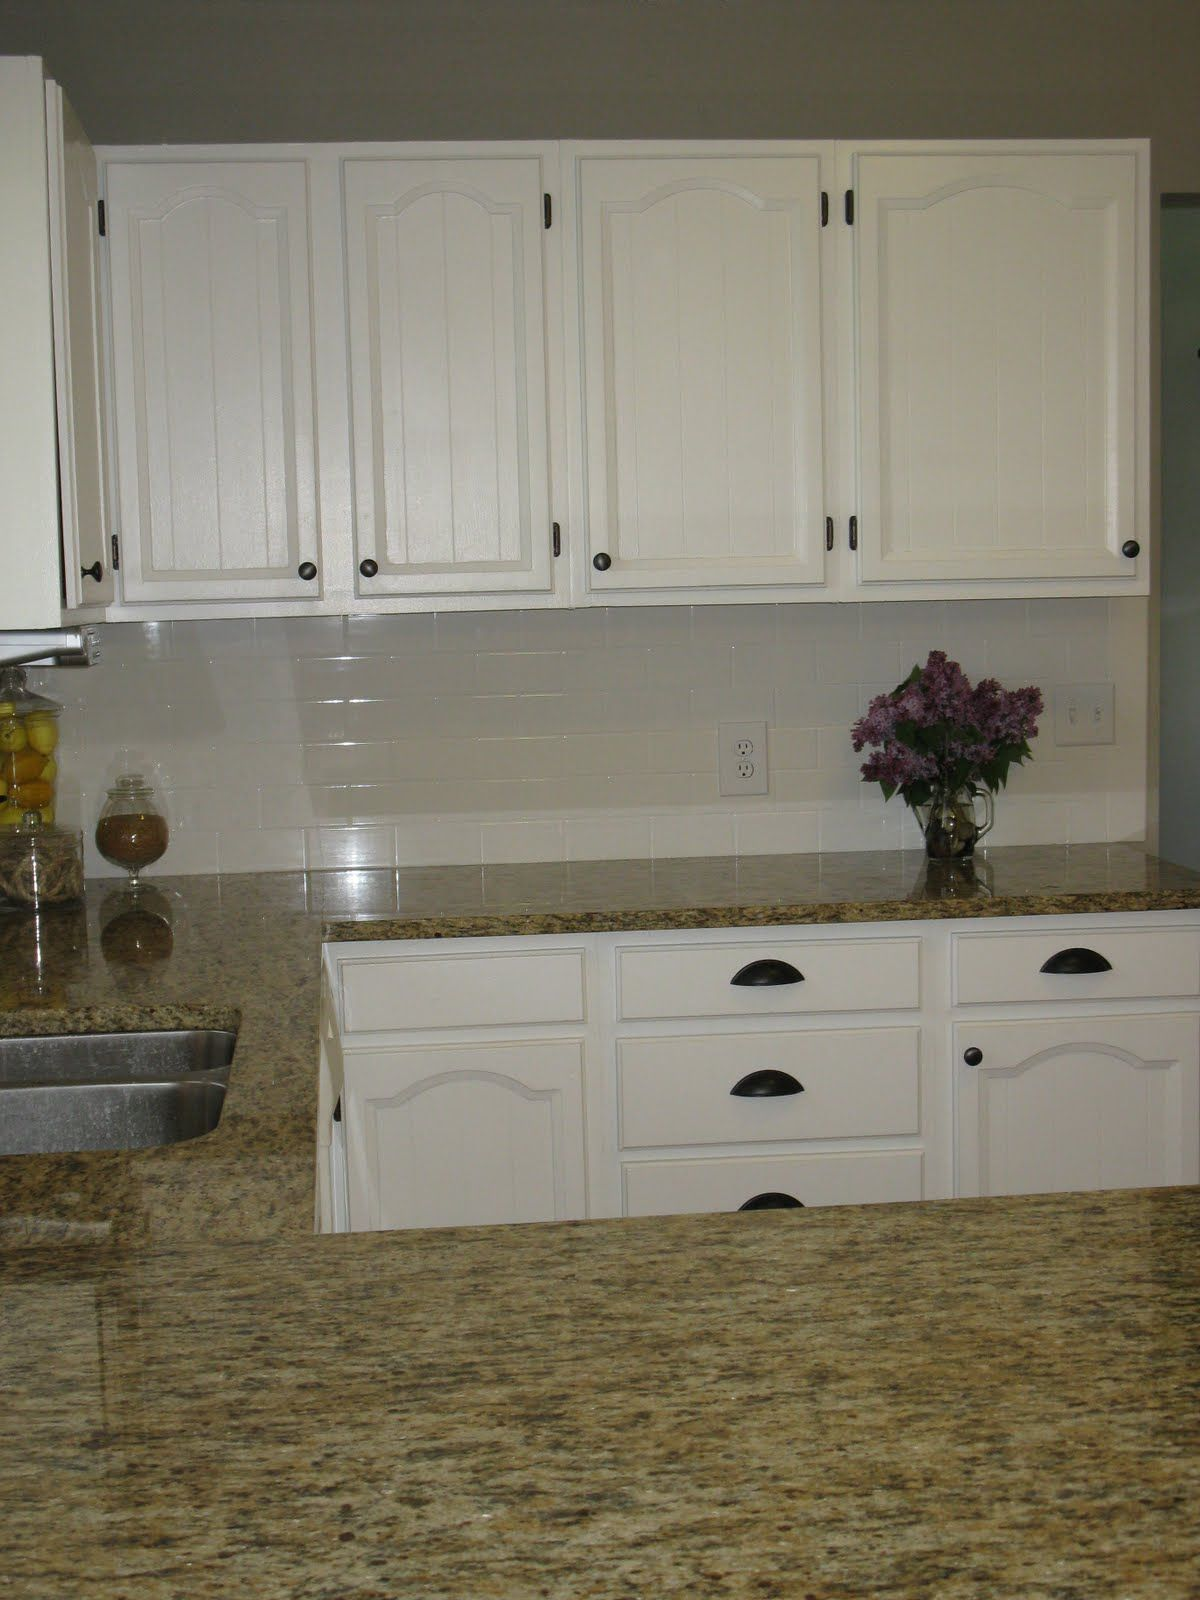 White Cabinets With Oil Rubbed Bronze Hardware And Hinges